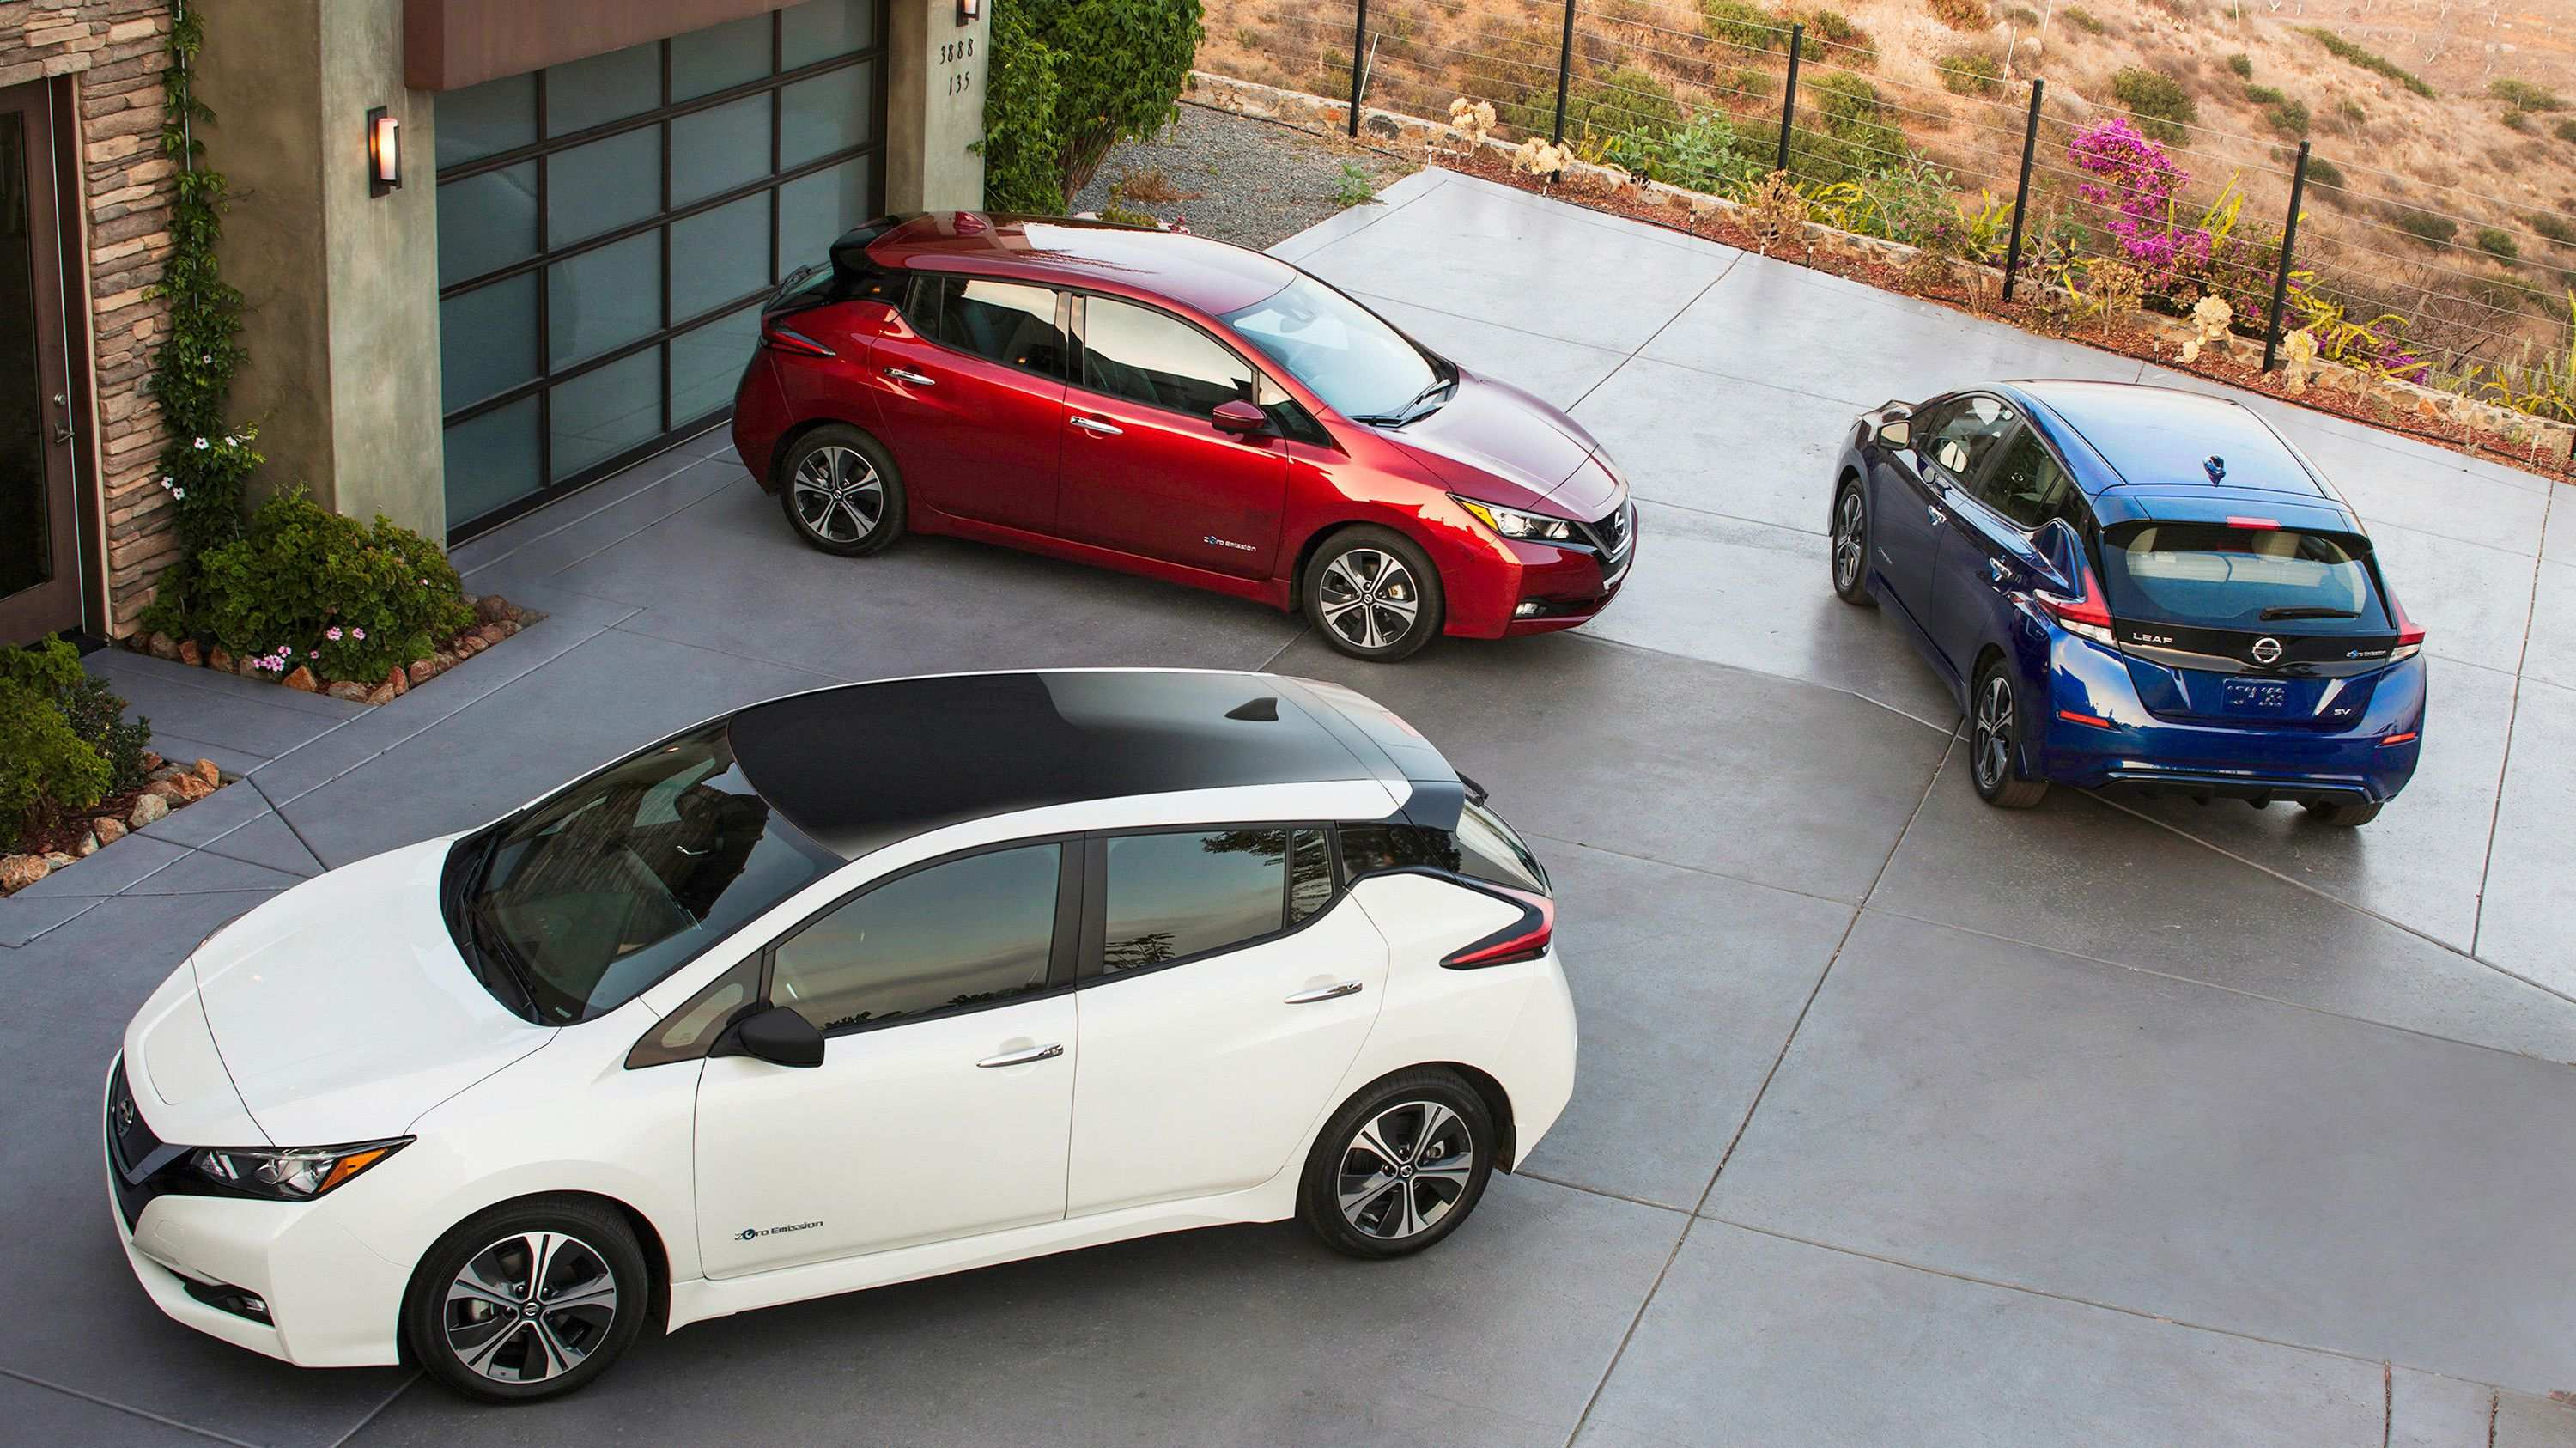 77 Best Review Nissan Leaf 2020 60 Kwh Pictures with Nissan Leaf 2020 60 Kwh